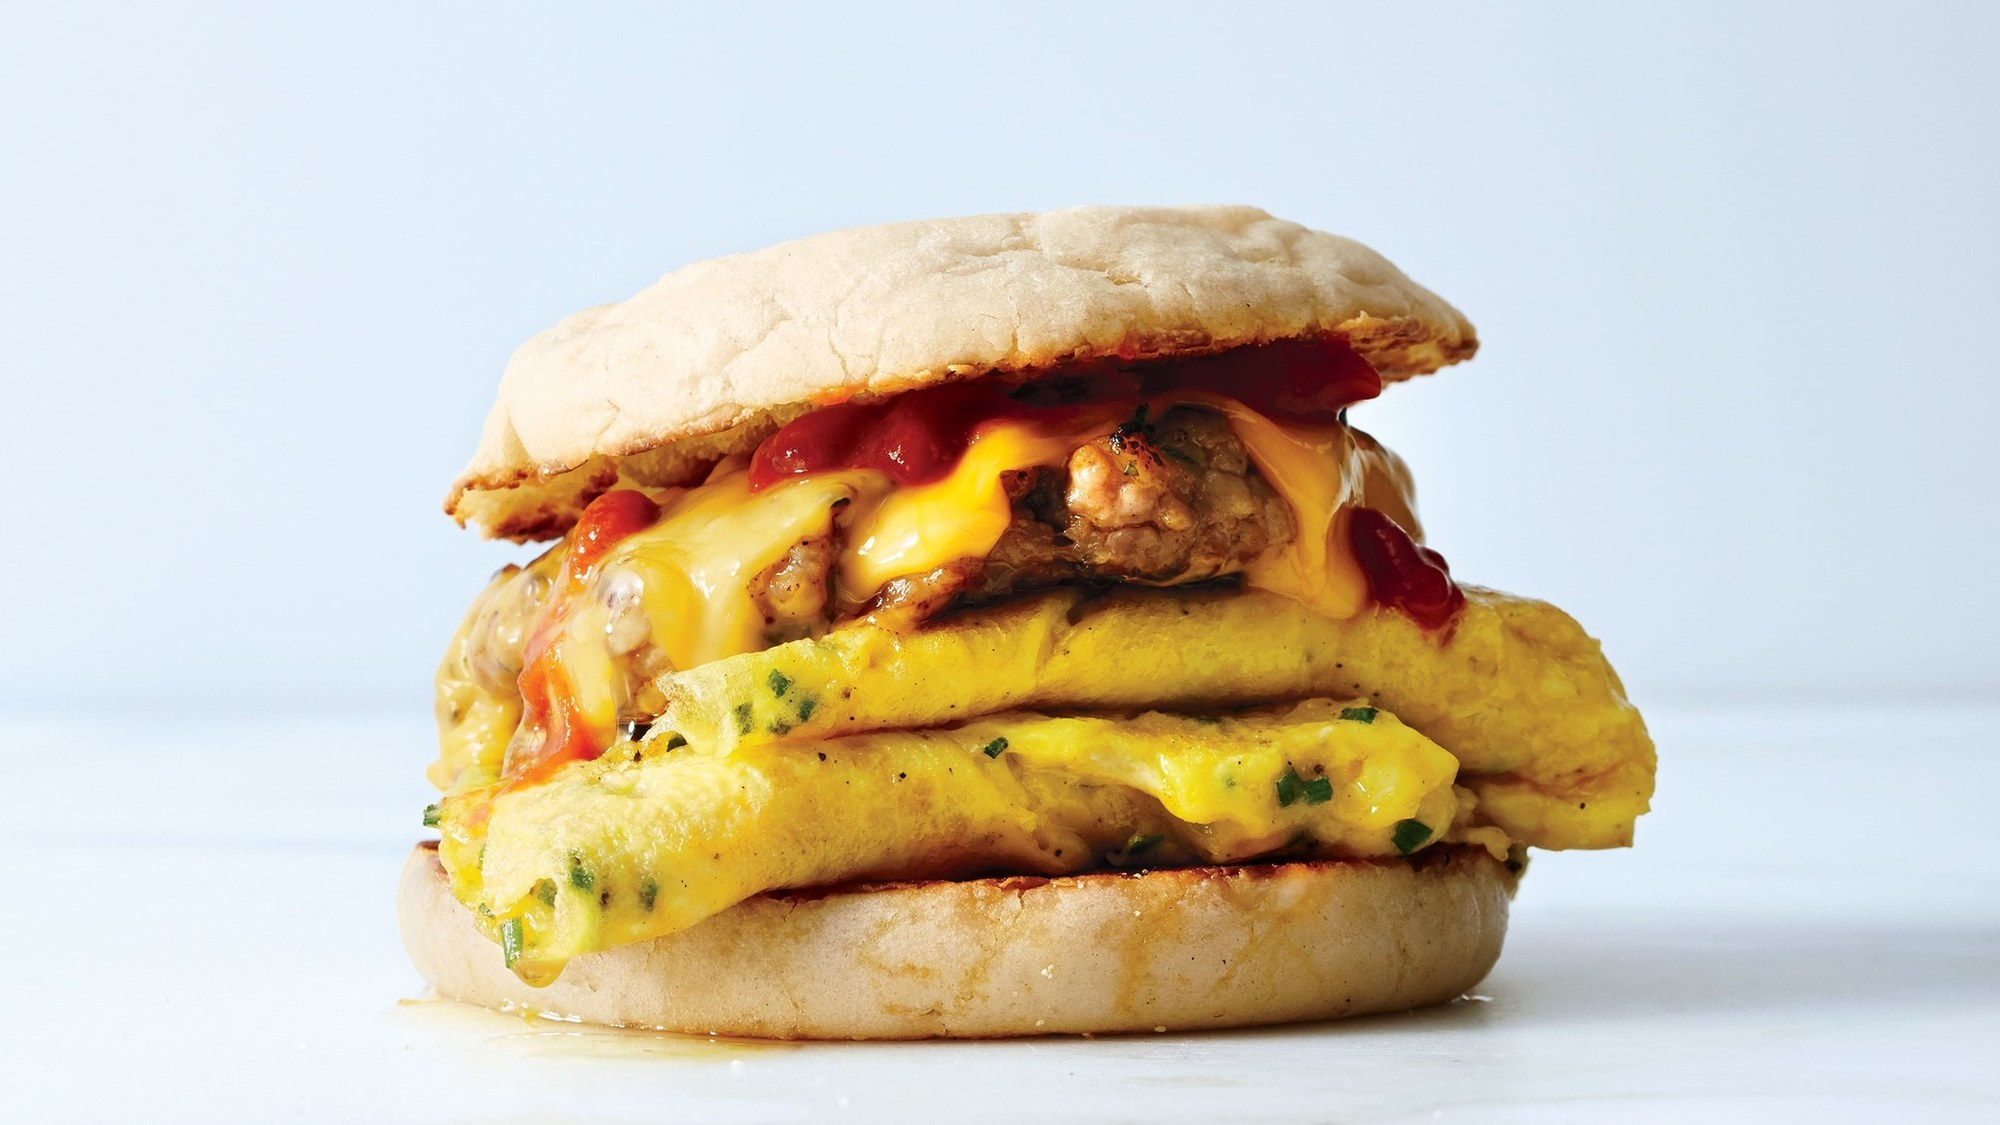 The leaning tower of breakfast sandwich is completed by the homemade sausage patty up top!